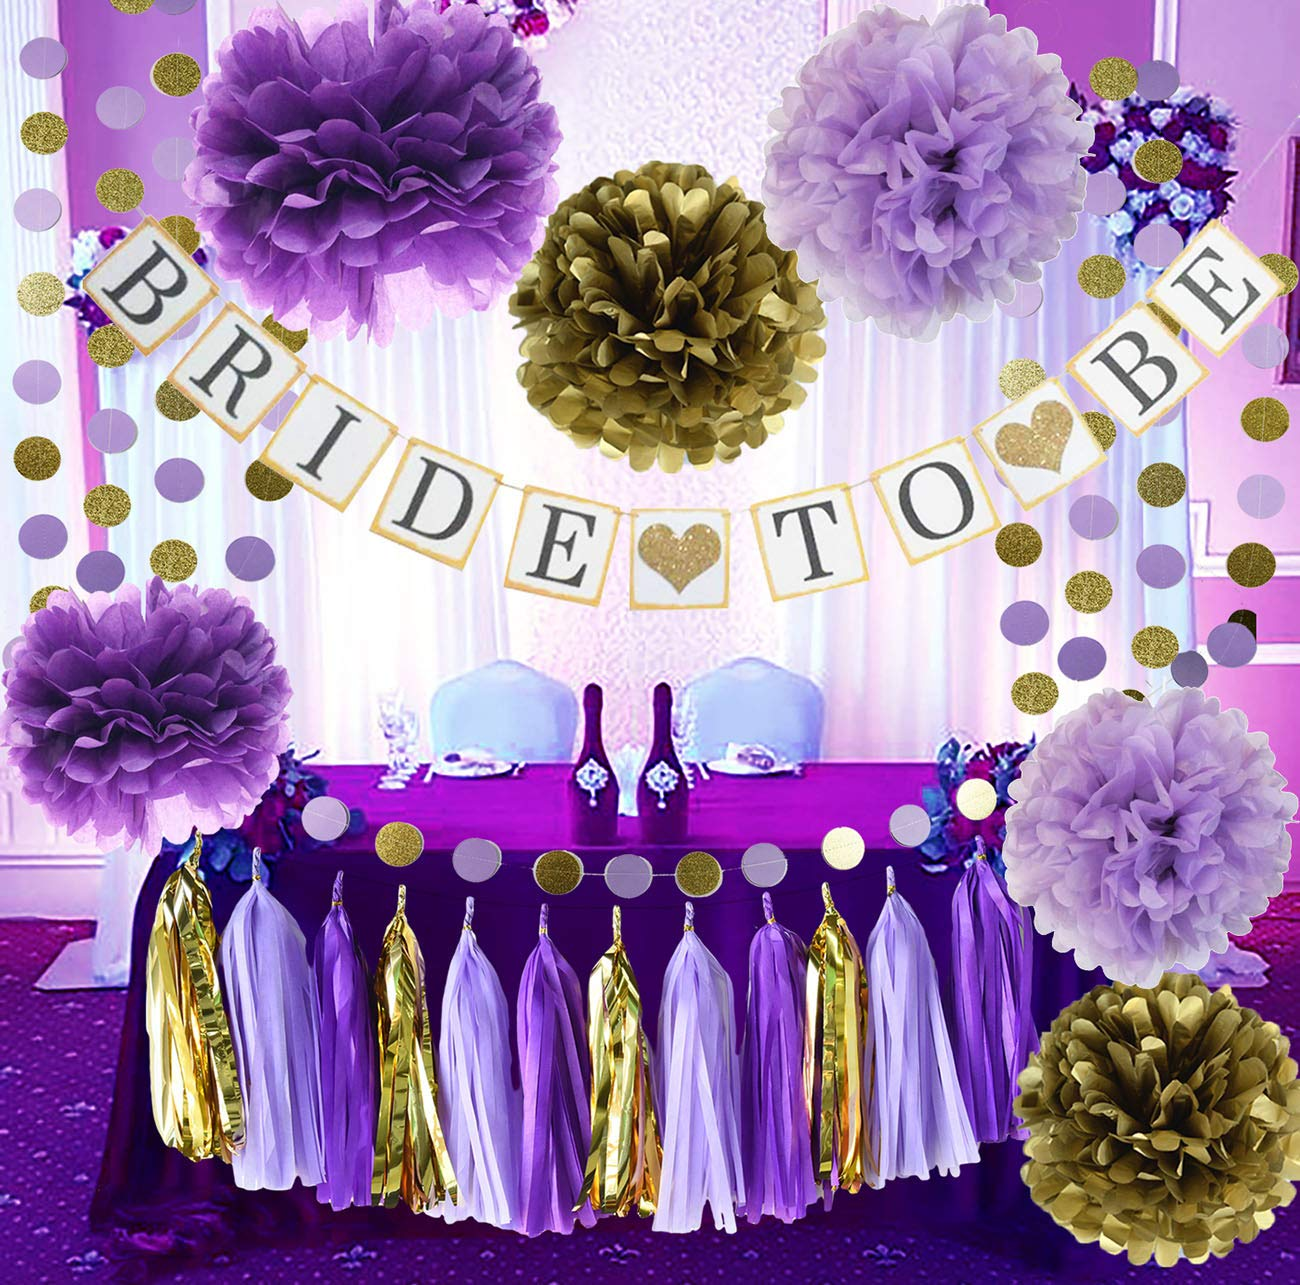 Bridal Shower Decorations Purple Gold Qian's Party Purple Bride To Be Banner Glitter Gold Tissue Paper Pom Pom Bridal Shower Wedding Supplies/Bachelorette Party Decorations